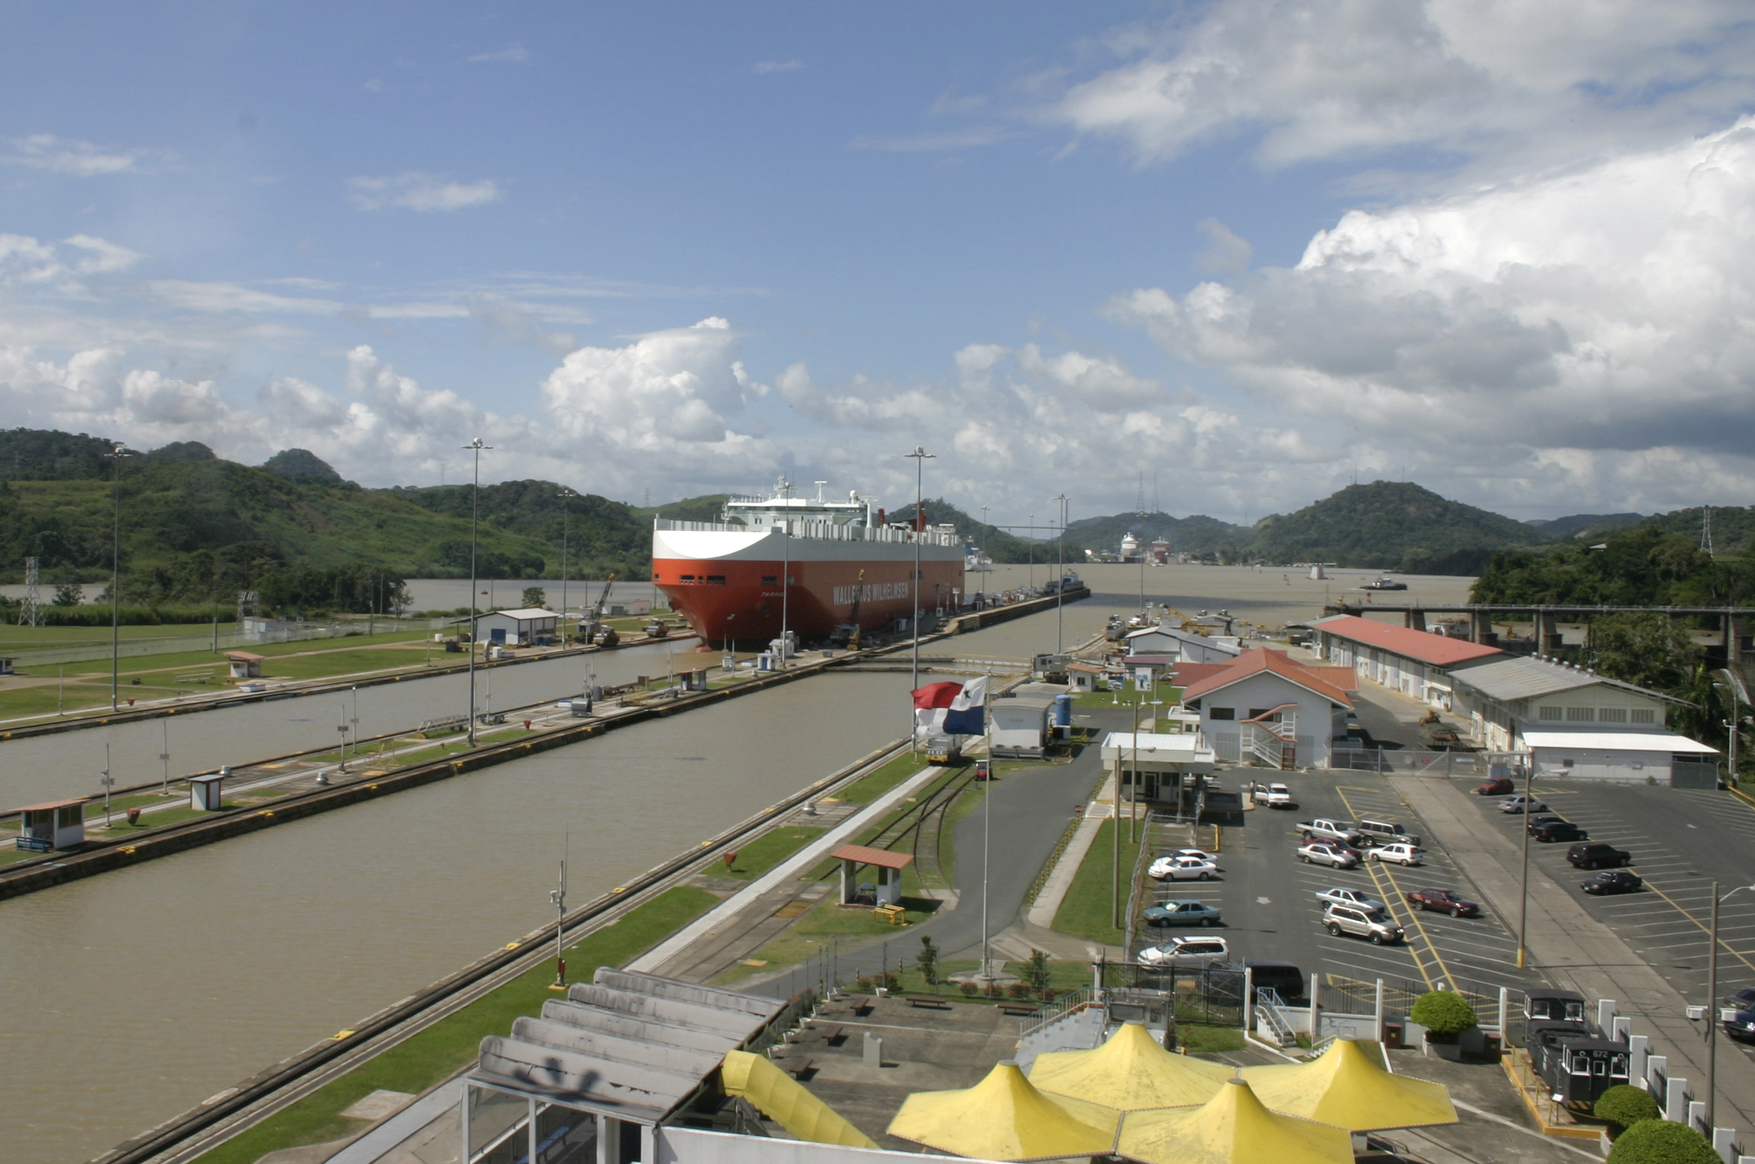 Canal De Panama: History Of The Panama Canal